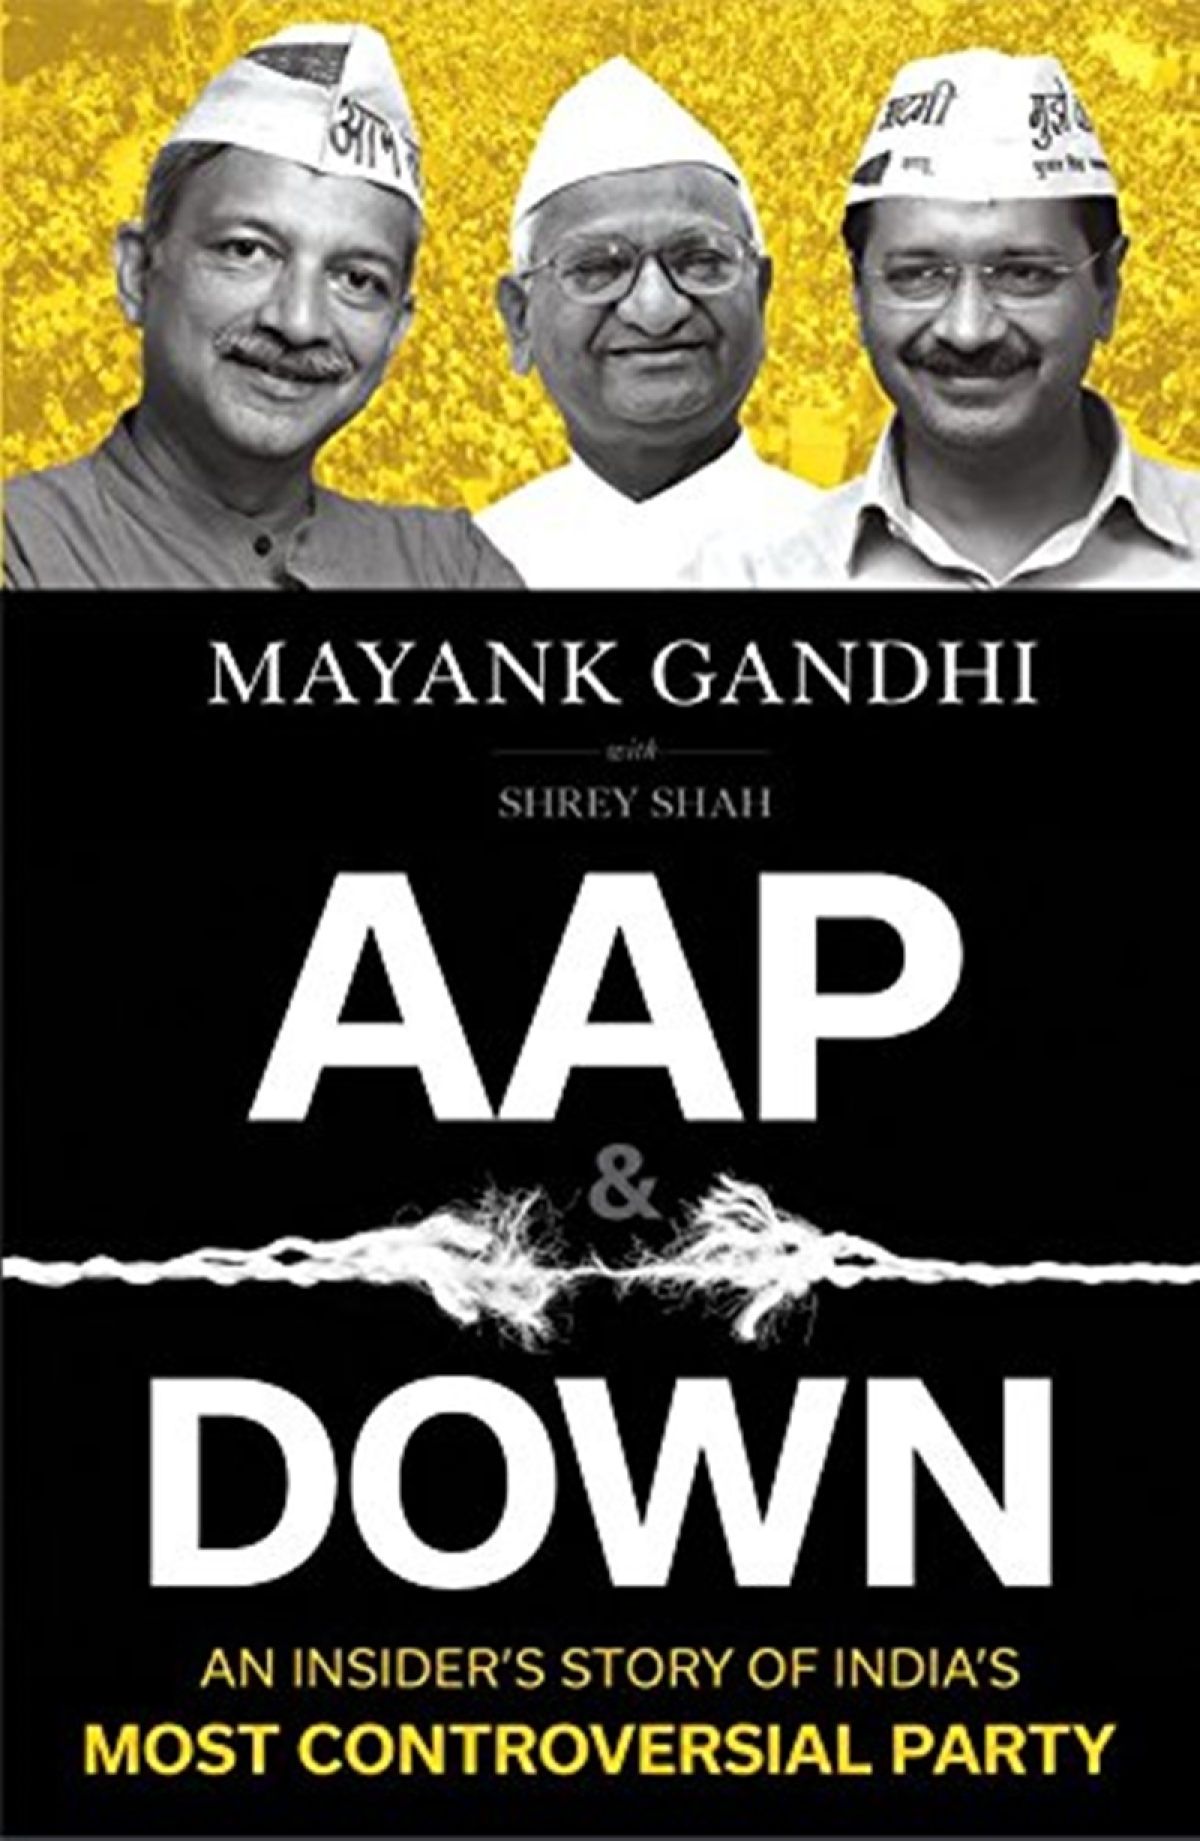 AAP & Down: An Insider's Story of India's Most Controversial Party by Mayank Gandhi and Shrey Shah- Review